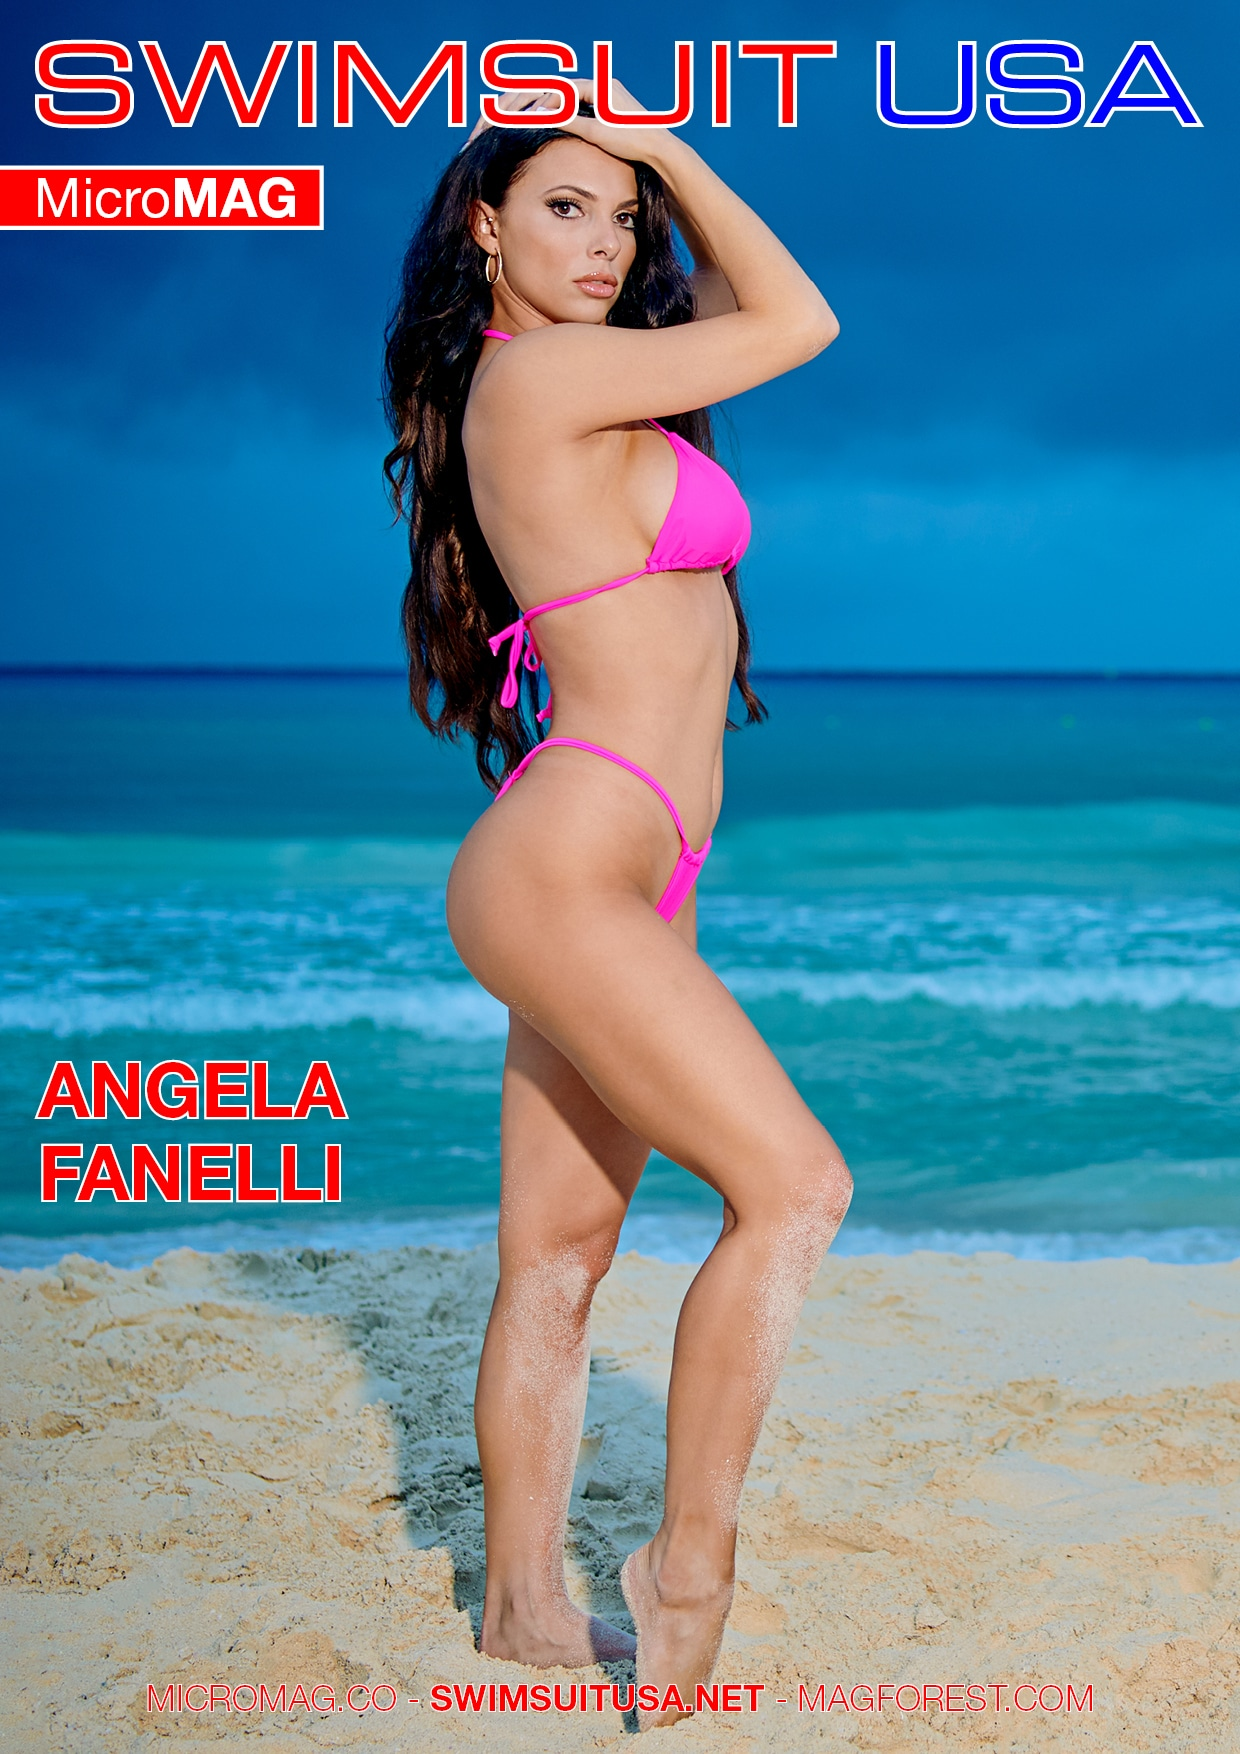 Swimsuit USA MicroMAG - Angela Fanelli - Issue 2 2